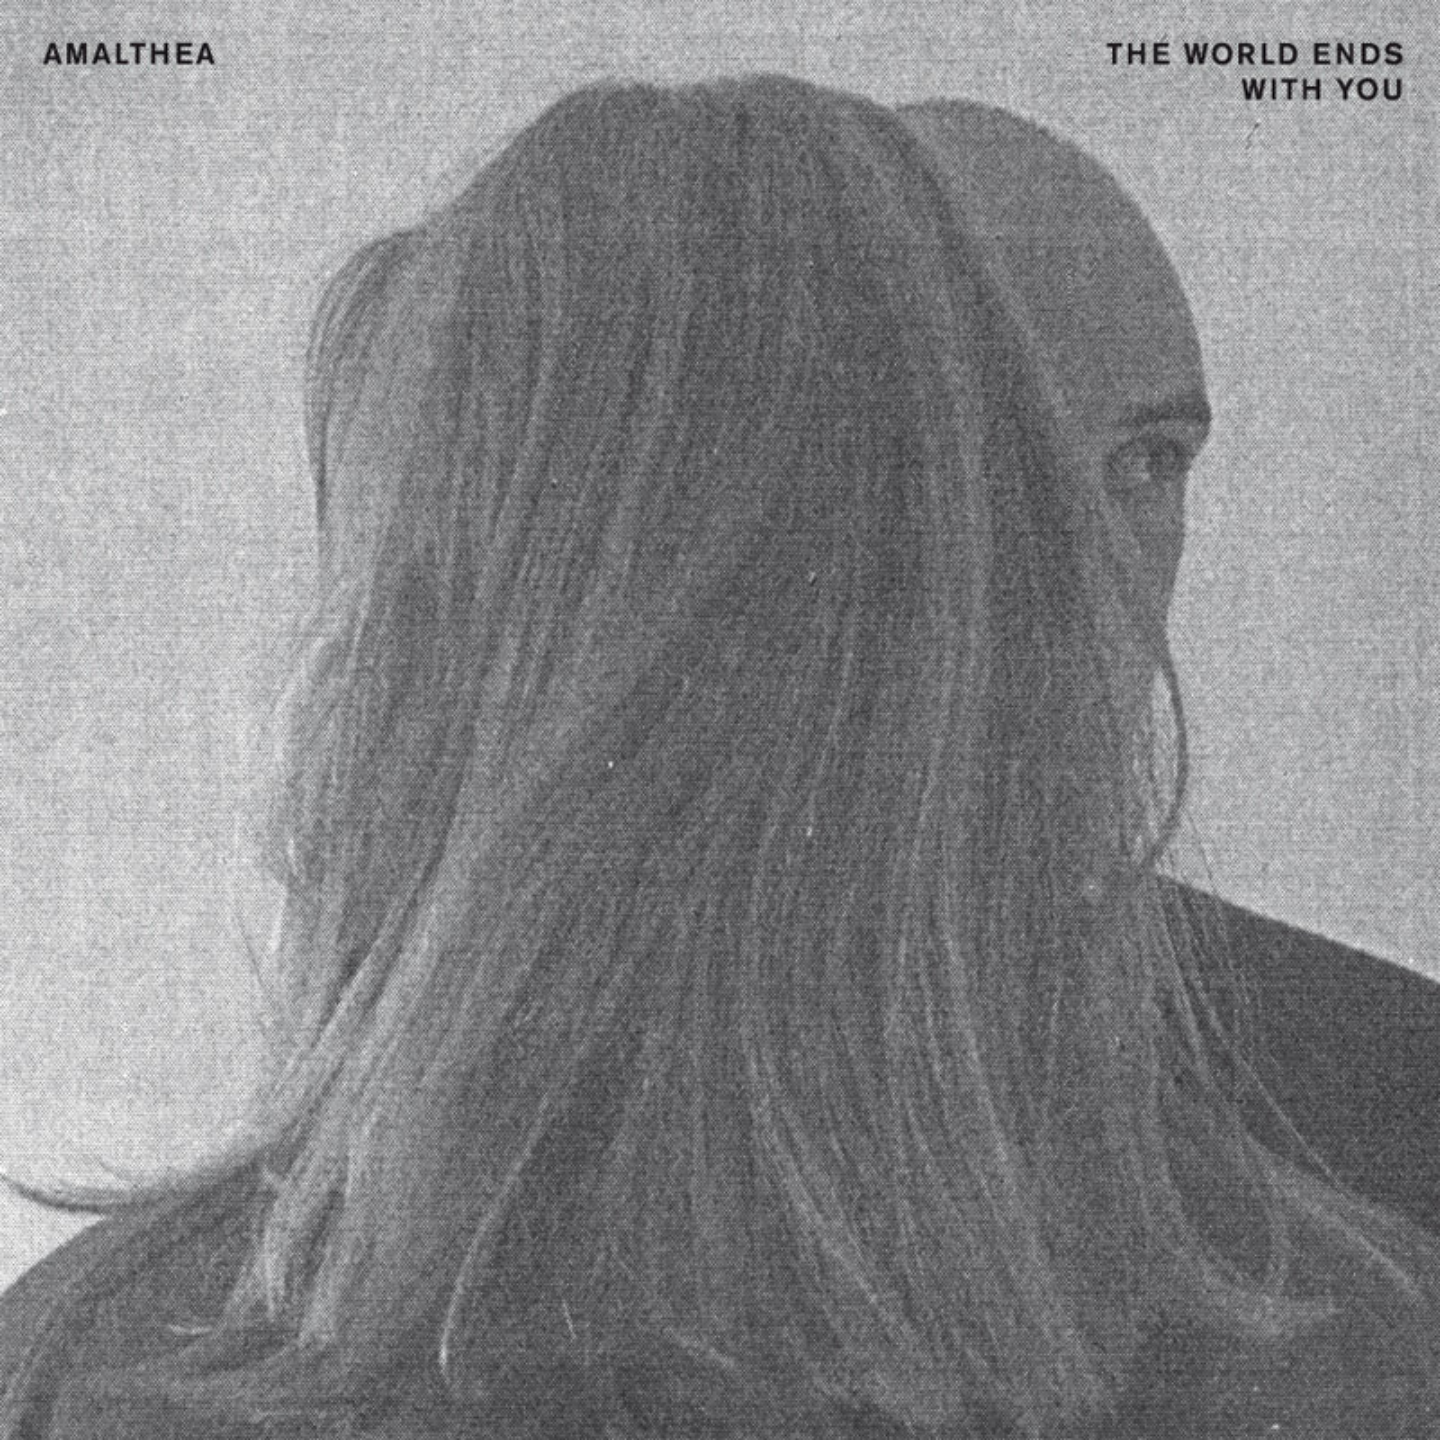 AMALTHEA - The World Ends With You 12EP